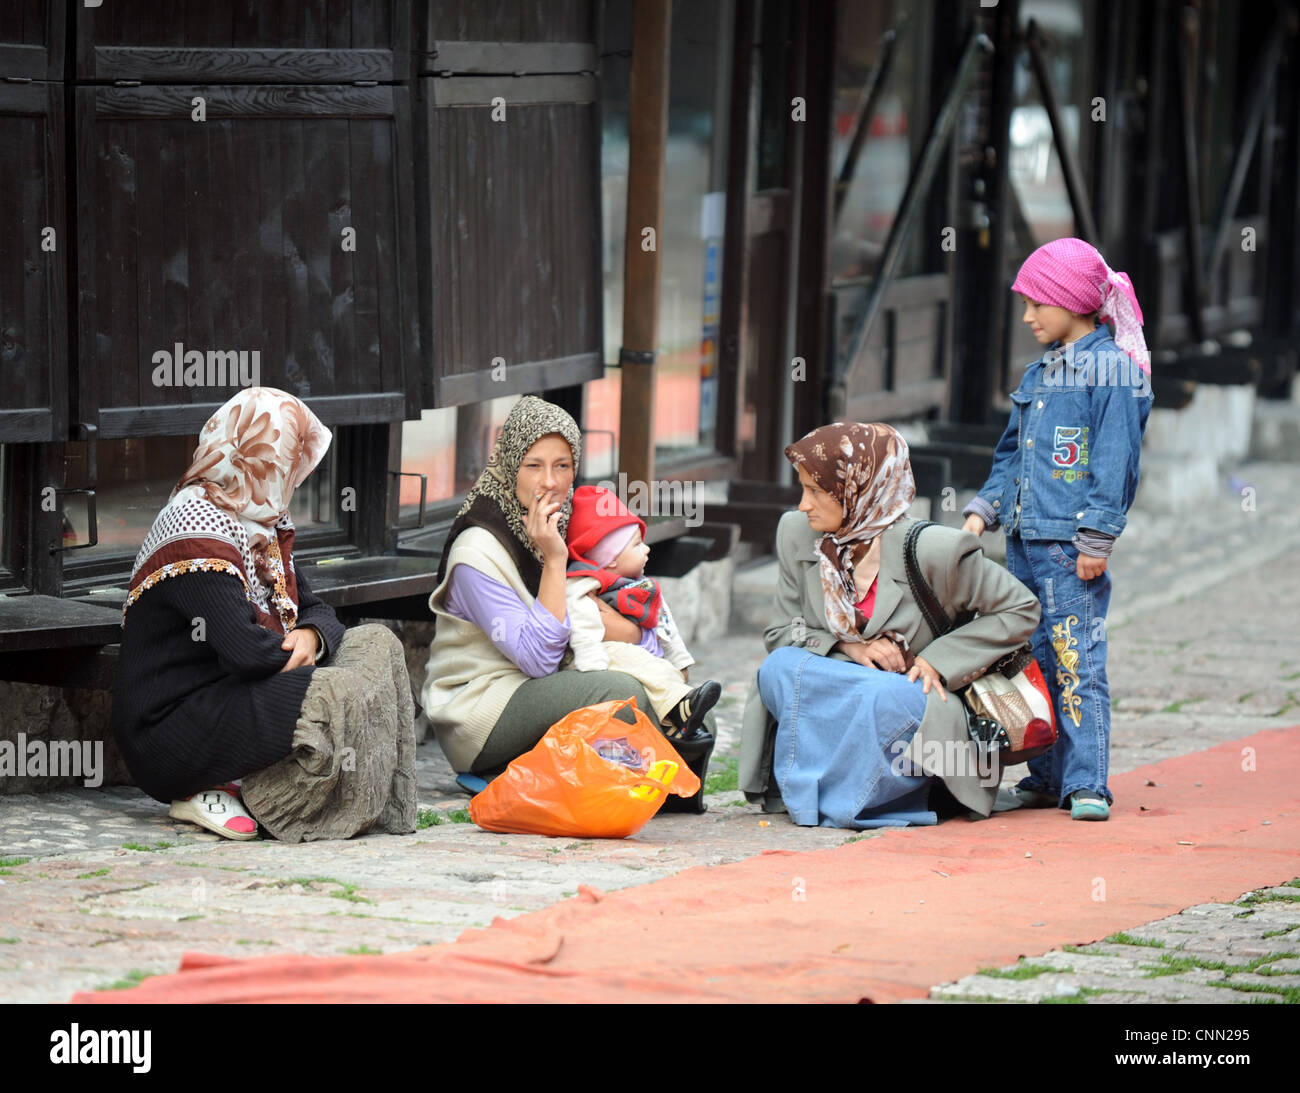 Beggars in old Turkish quarter of Bosnian capital Sarajevo. - Stock Image